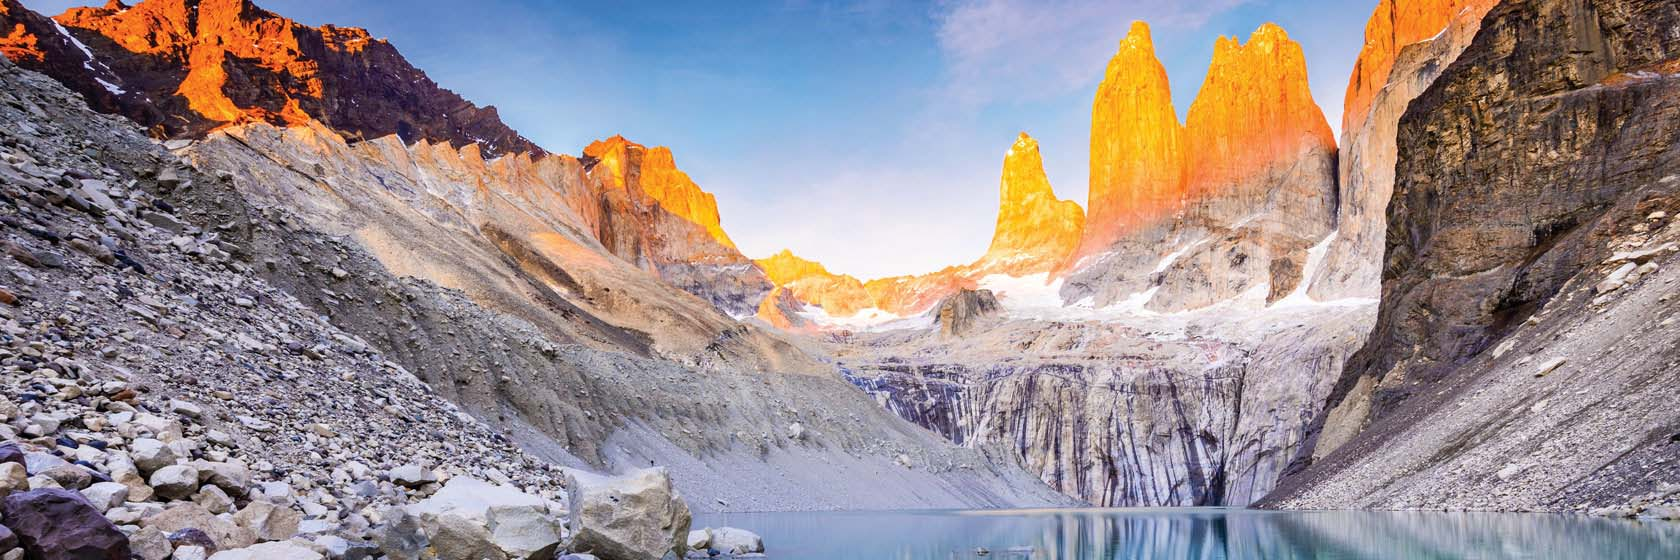 Chile & Argentina: Patagonian Wilderness, 15 Days Santiago to Buenos Aires with A&K